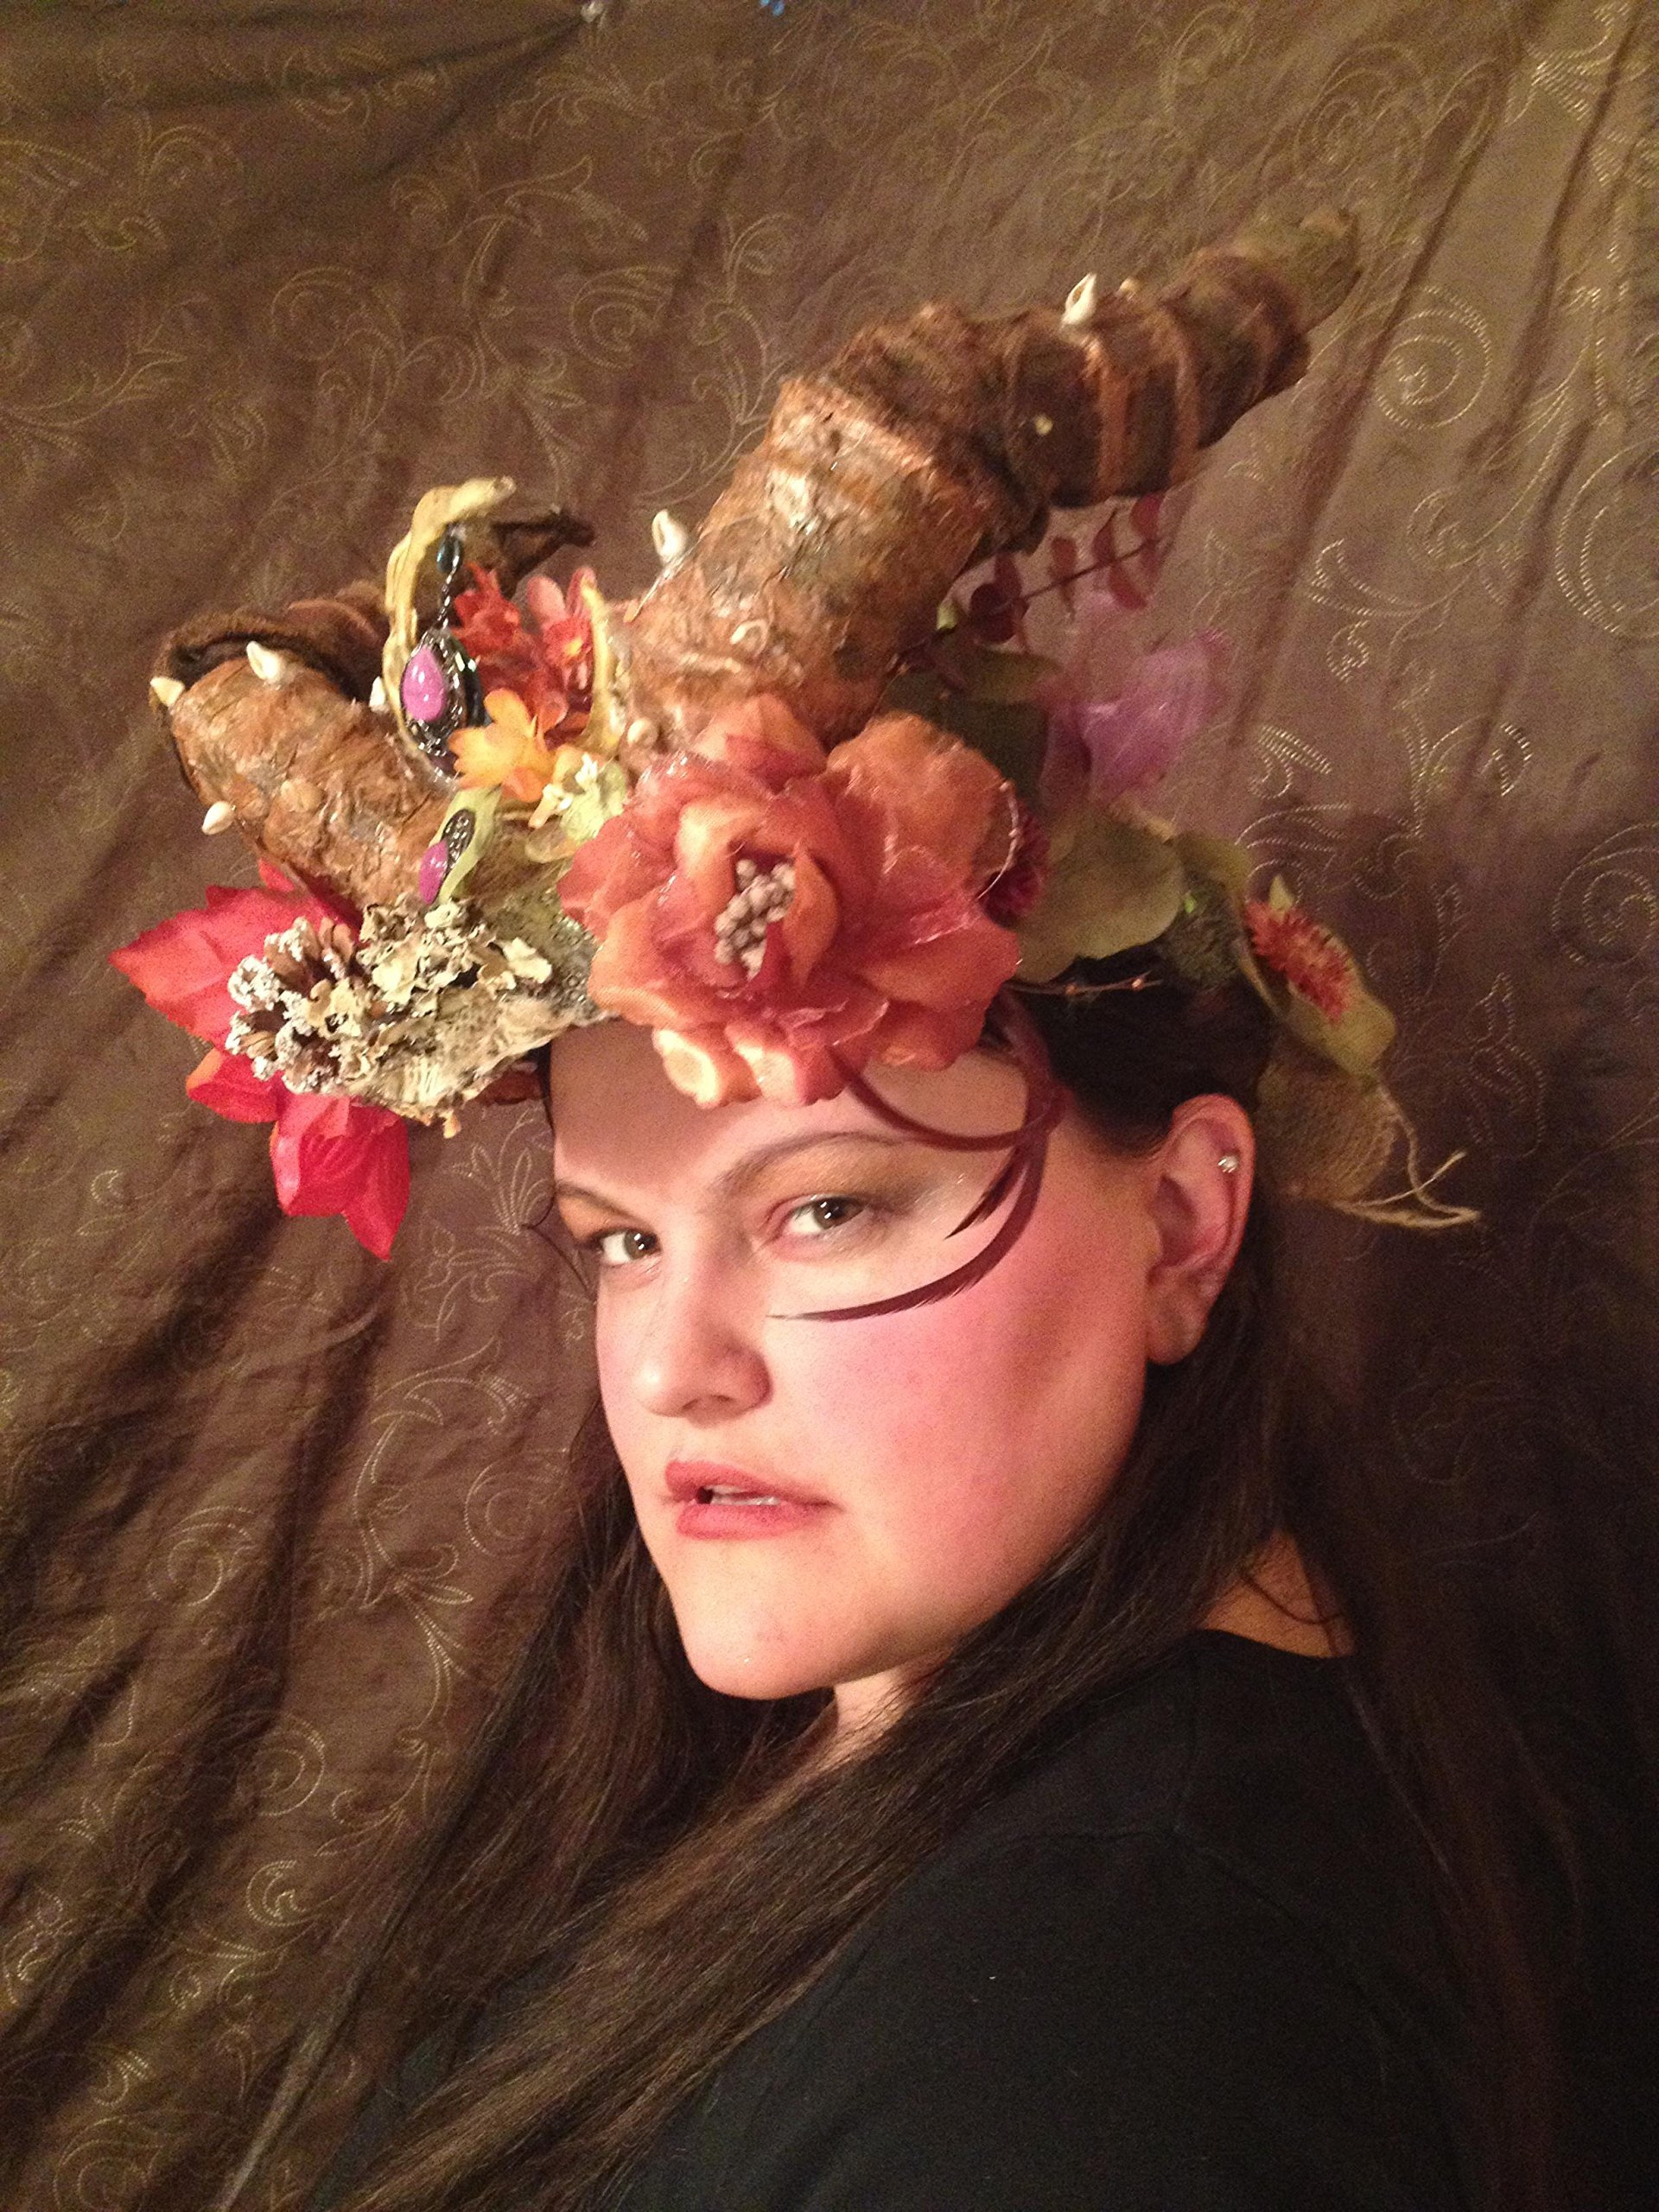 Beltane Fairy Headdress, pagan moon crown, May Queen Maypole magic, Woodland Elven flower headpiece, horned shaman costume, forest fae wear